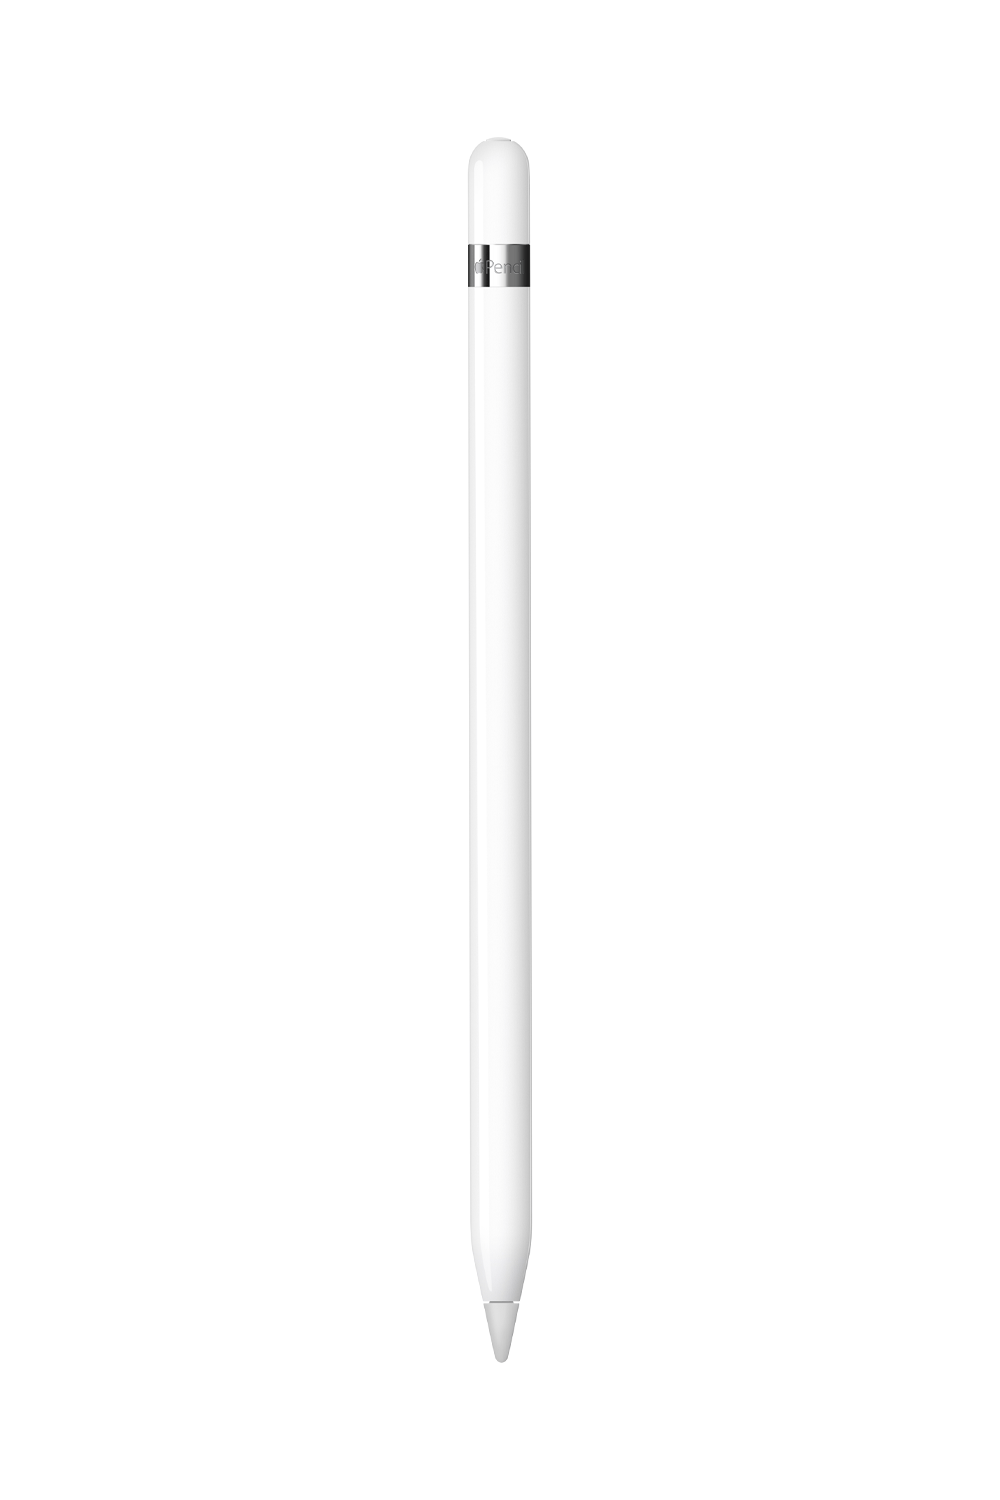 Apple Pencil for iPad Air (3rd generation)  Apple Pencil for iPad (7th generation)  Apple Pencil for iPad mini (5th generation)  Apple Pencil for iPad Pro 10.5-inch  Apple Pencil for iPad Pro 12.9-inch (2nd generation)  Apple Pencil for iPad Pro 12.9-inch (1st generation)  Apple Pencil for iPad Pro 9.7-inch  Apple Pencil for iPad (6th generation)